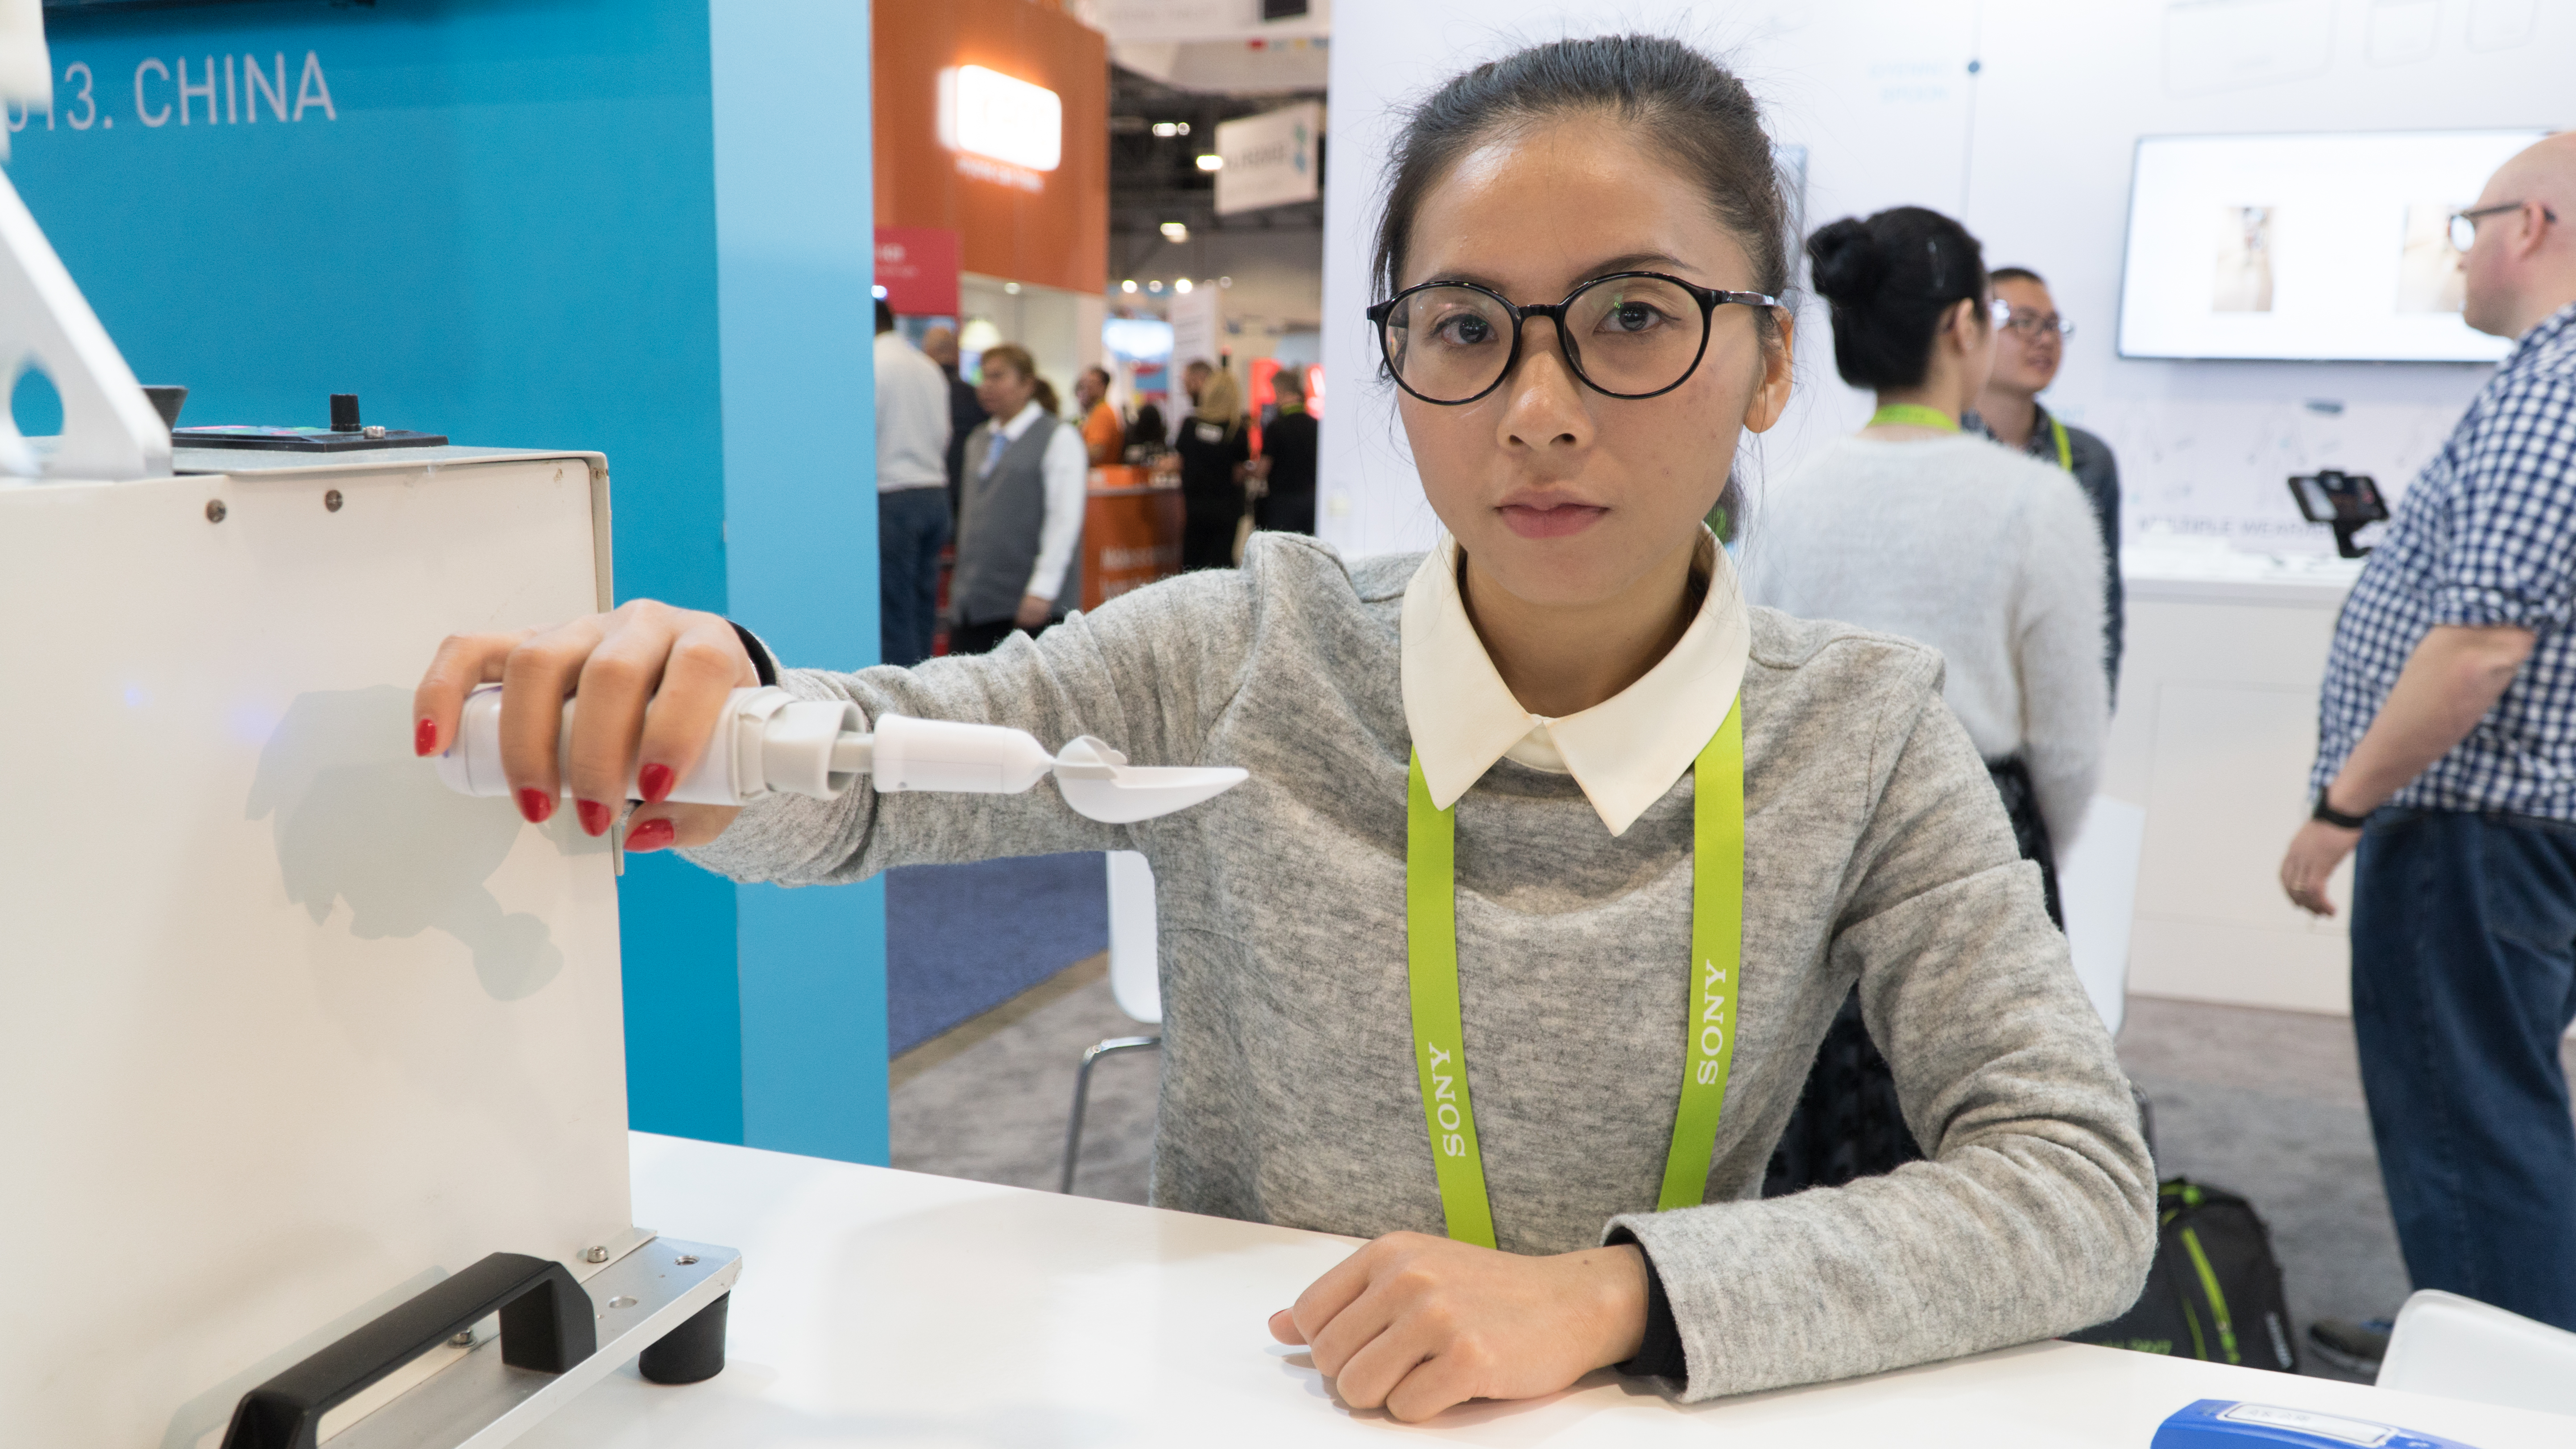 Nuo Xian Chen shows the GYENNO SPOON to the reporter at Sands Expo and Convention Center in Las Vegas on Wednesday, Jan. 10th, 2018. Photo by Yukun Zhang / BU News Service.